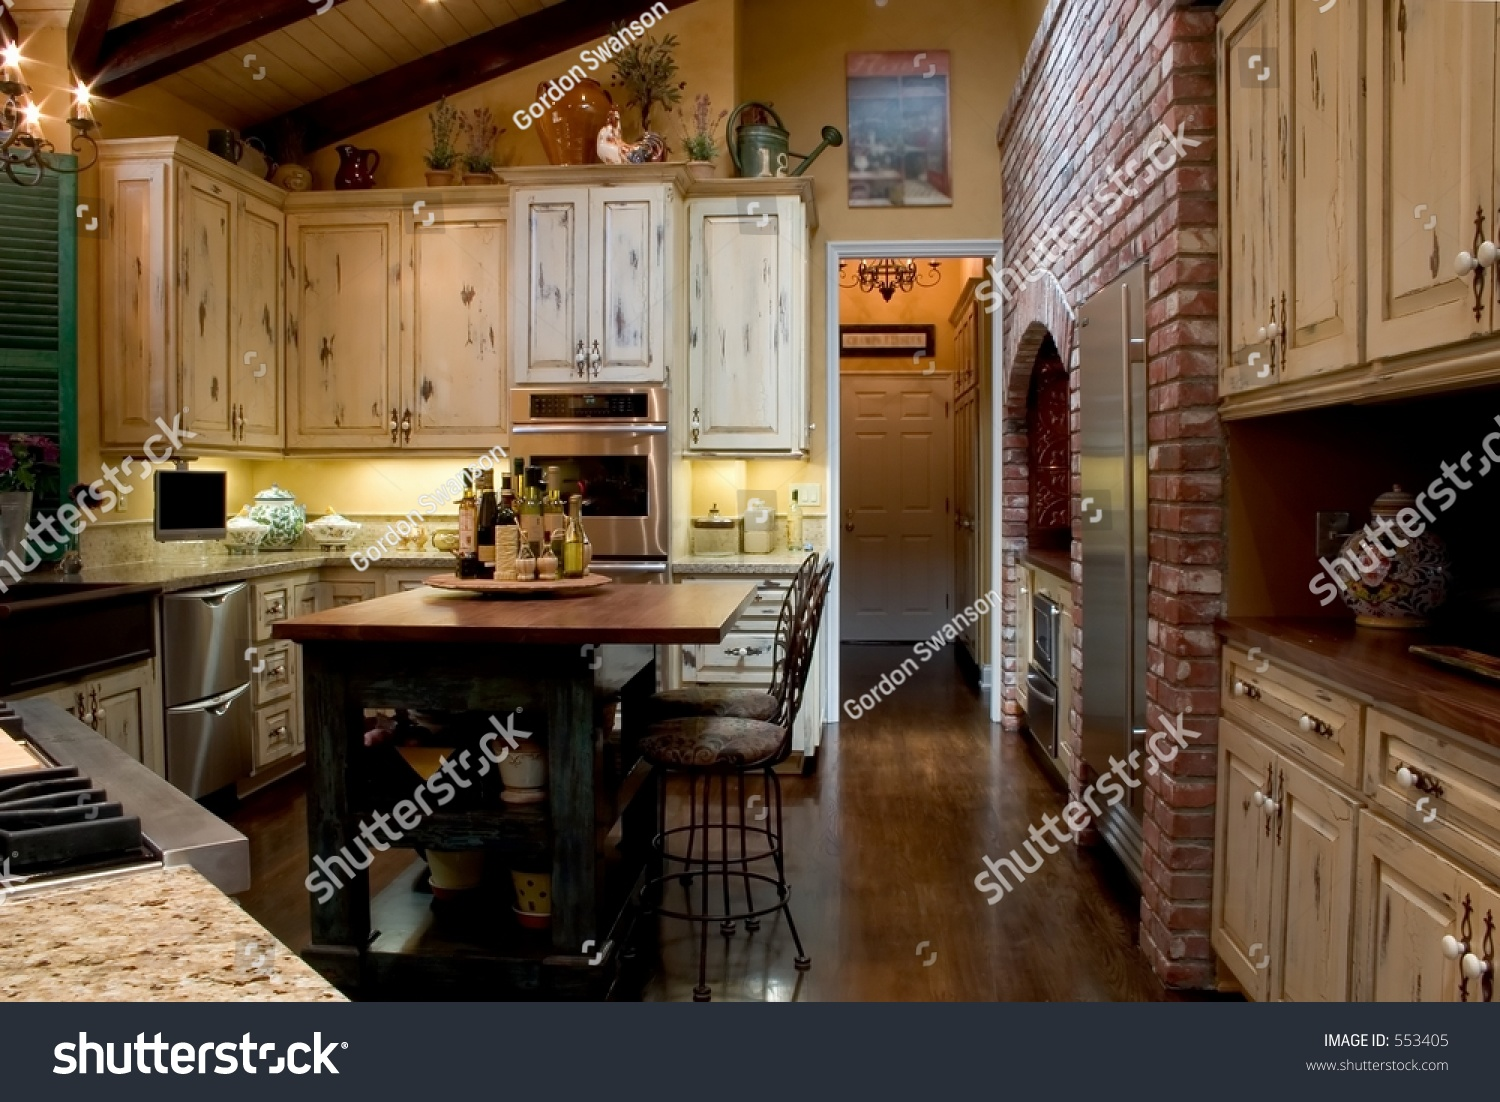 Newly Remodeled Kitchen With A French Farmhouse Theme